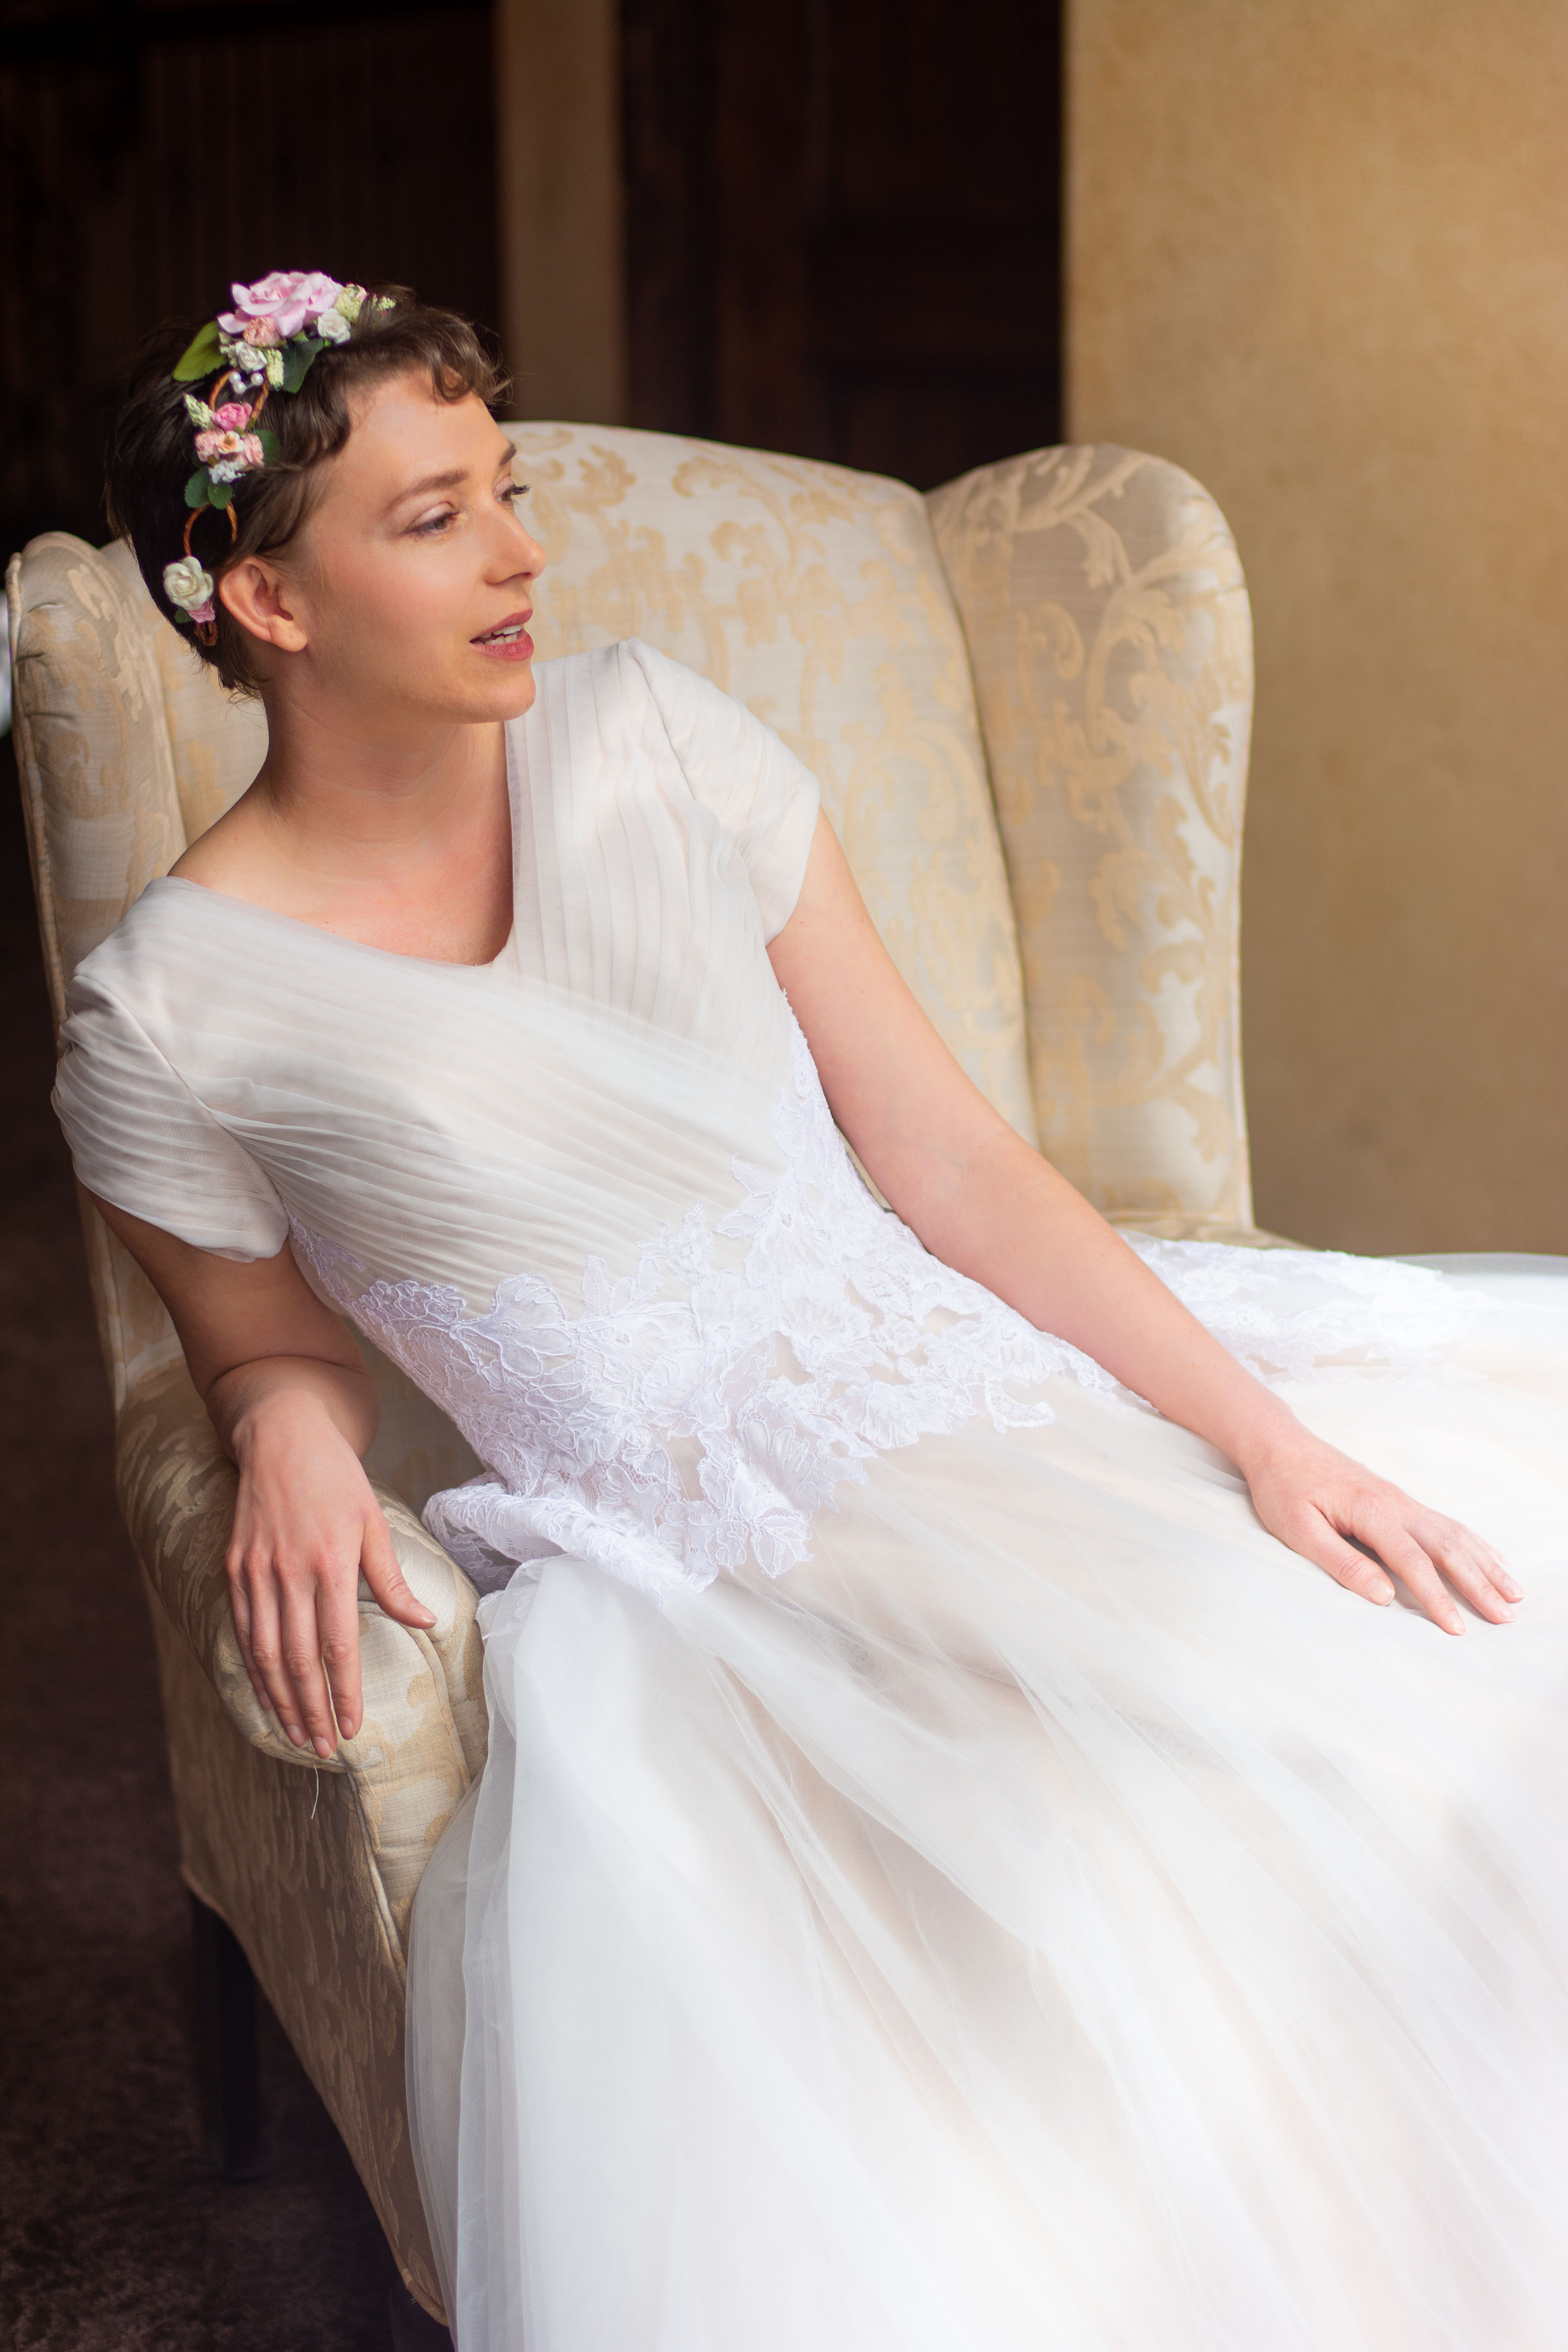 7f89b7025cea5 OUR MODEST WEDDING DRESS COLLECTION. We sell wedding dresses ...